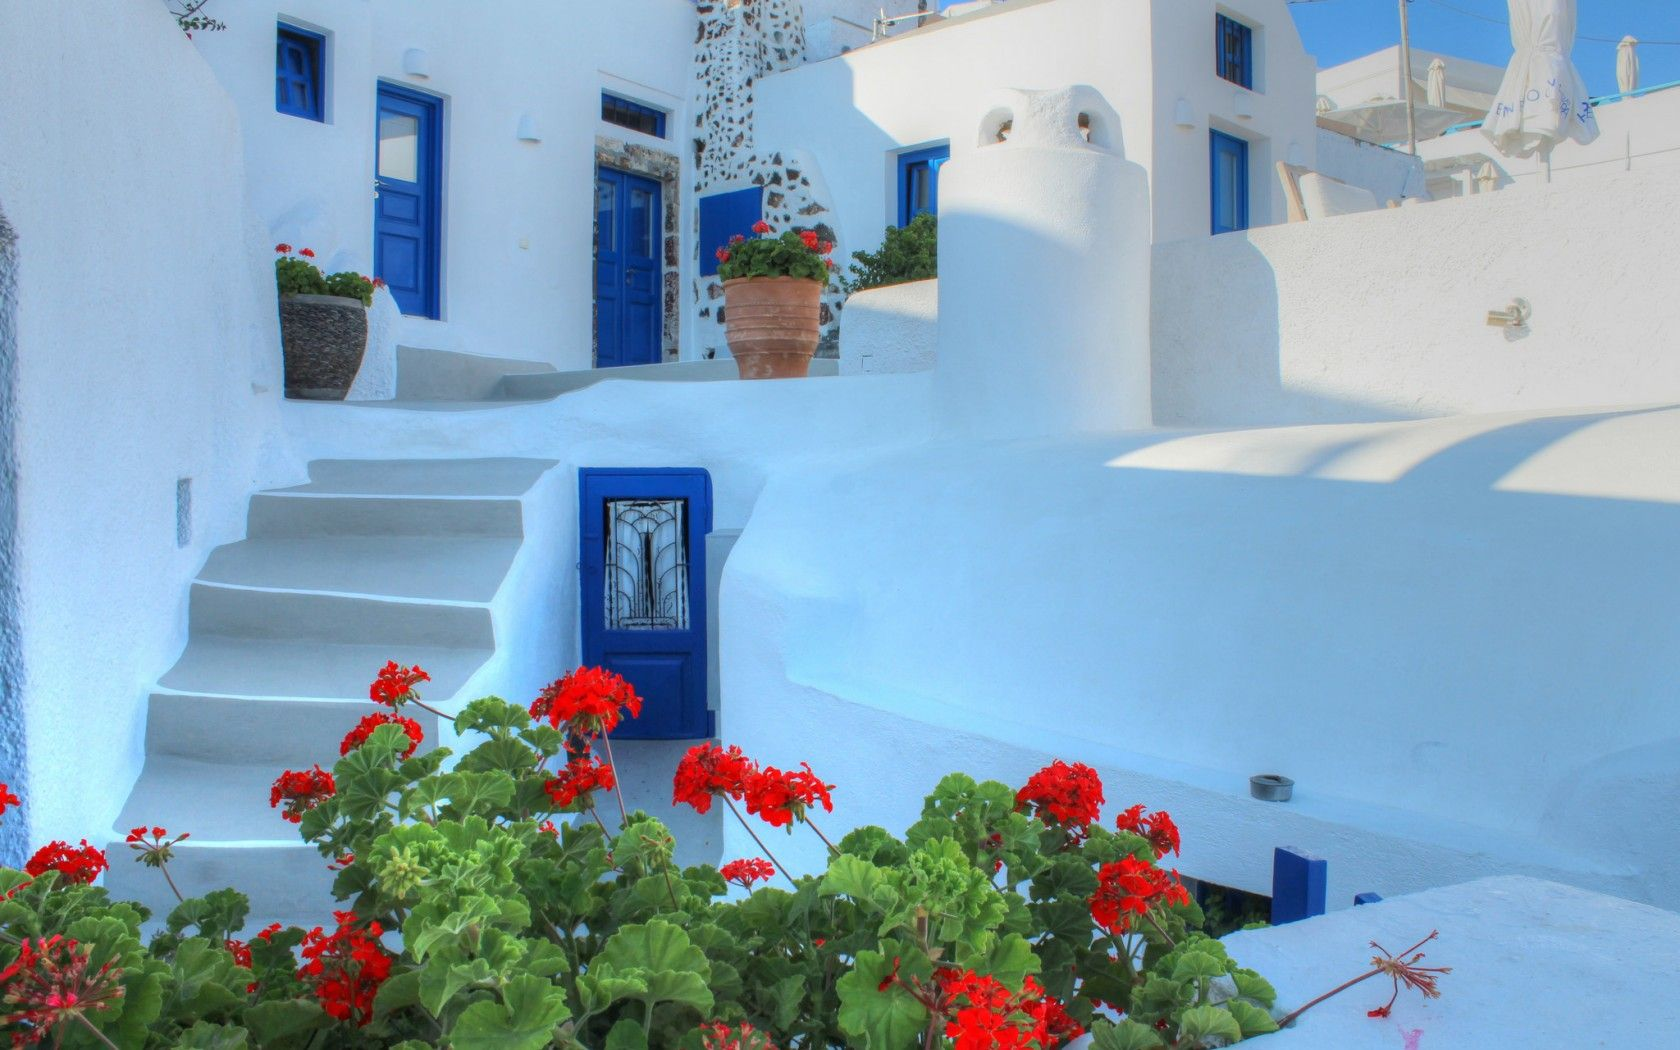 Santorini Greece Wallpaper Greece santorini house stairs 1680x1050